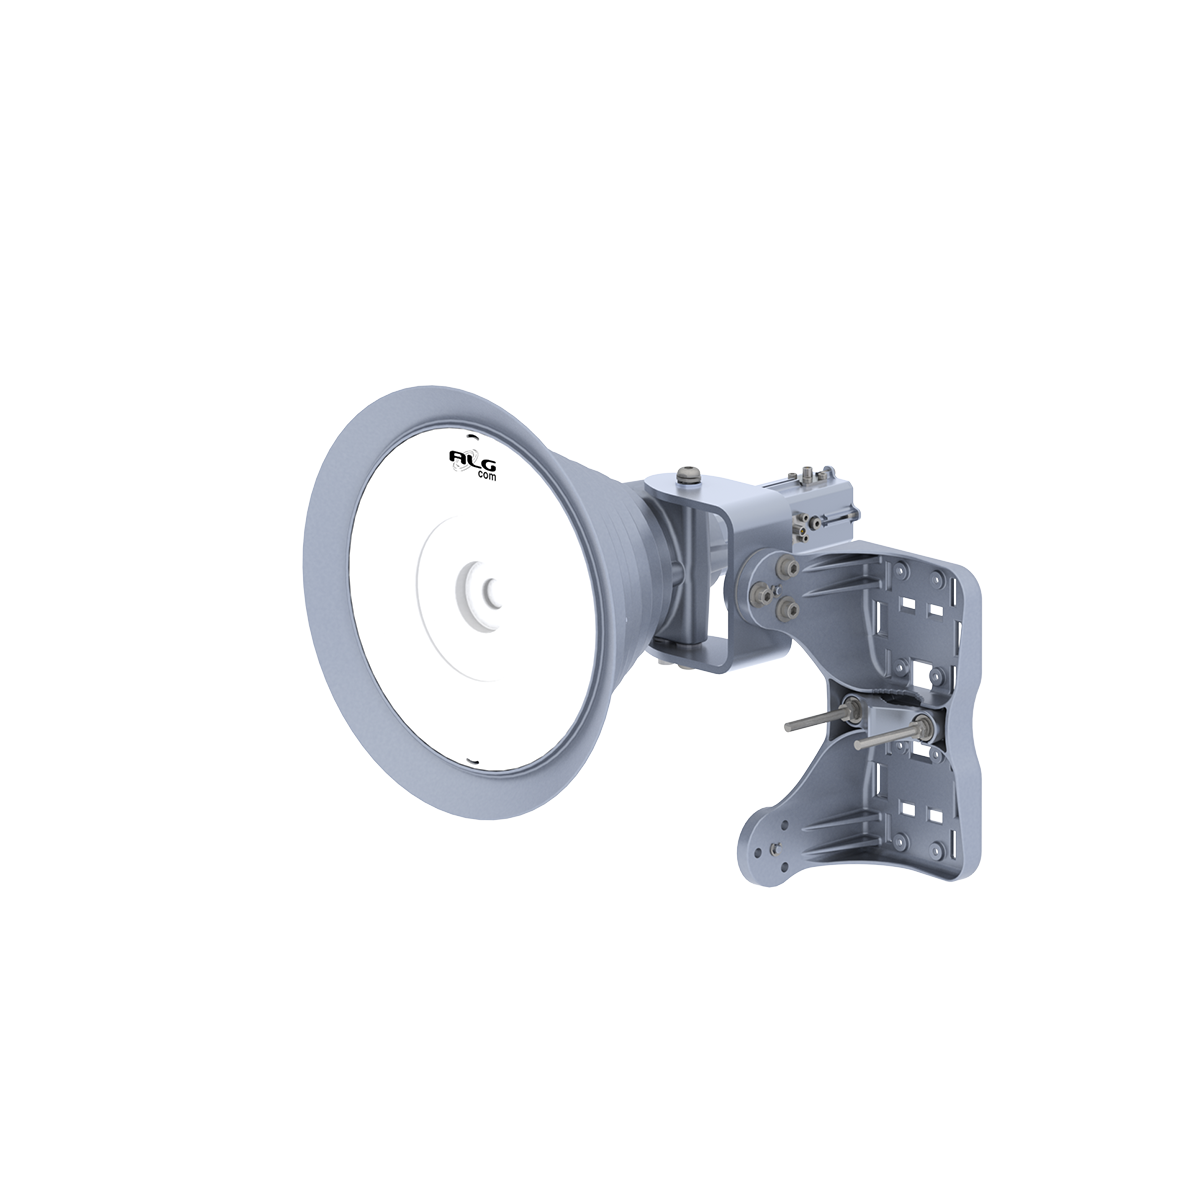 Algcom 4.9-6.425Ghz| 18dBi | Front-to-back ratio: >40dB | Beamwidth: 21.3° | SH-5800-18-30-D